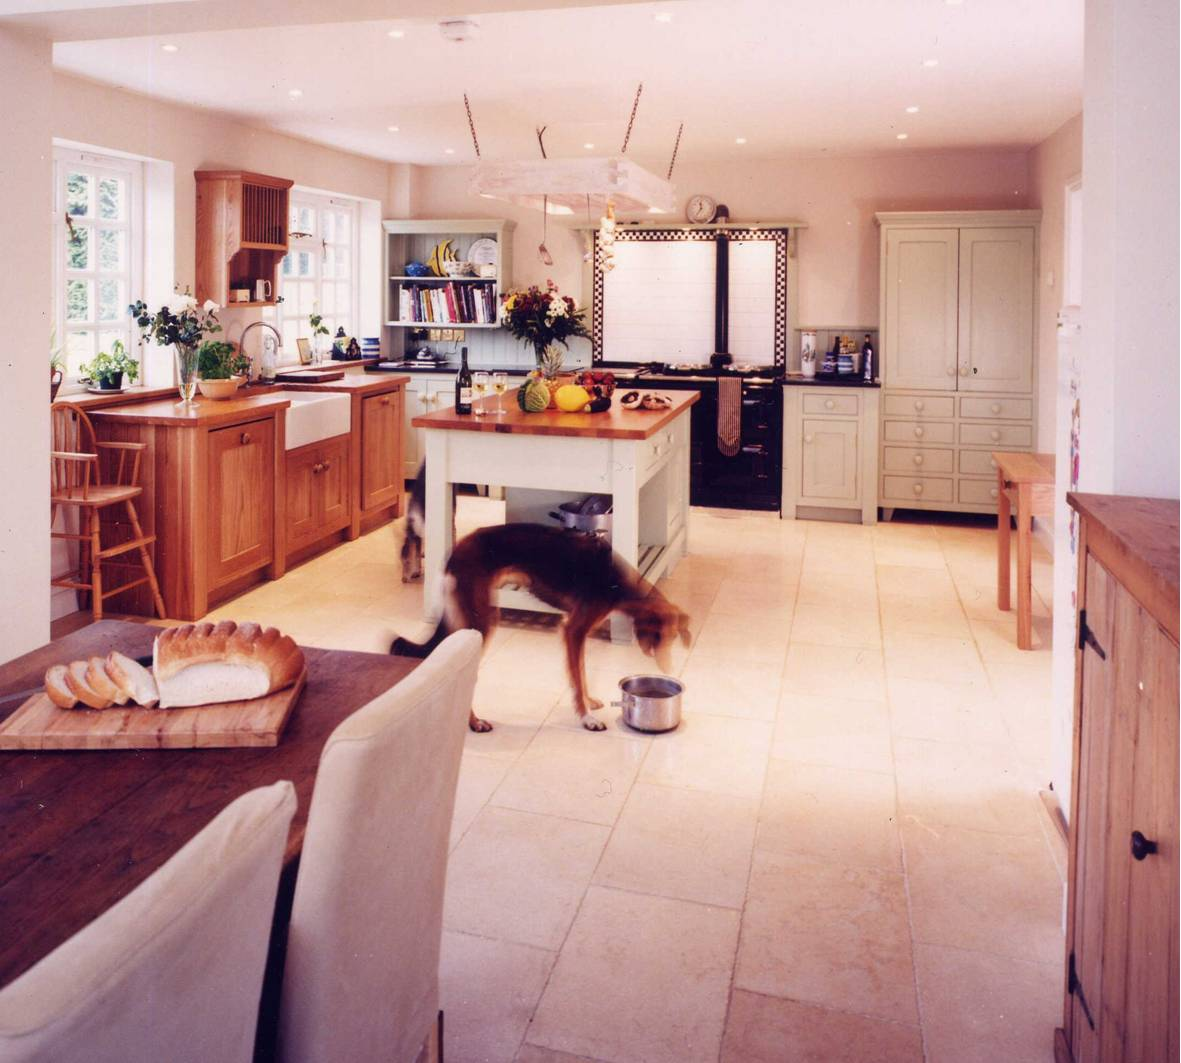 Dog eating from a bowl in the middle of a newly redmodeled kitchen. Architects near me, Inspiration Architects, were able to create a a very modern, cream with wood finish kitchen.